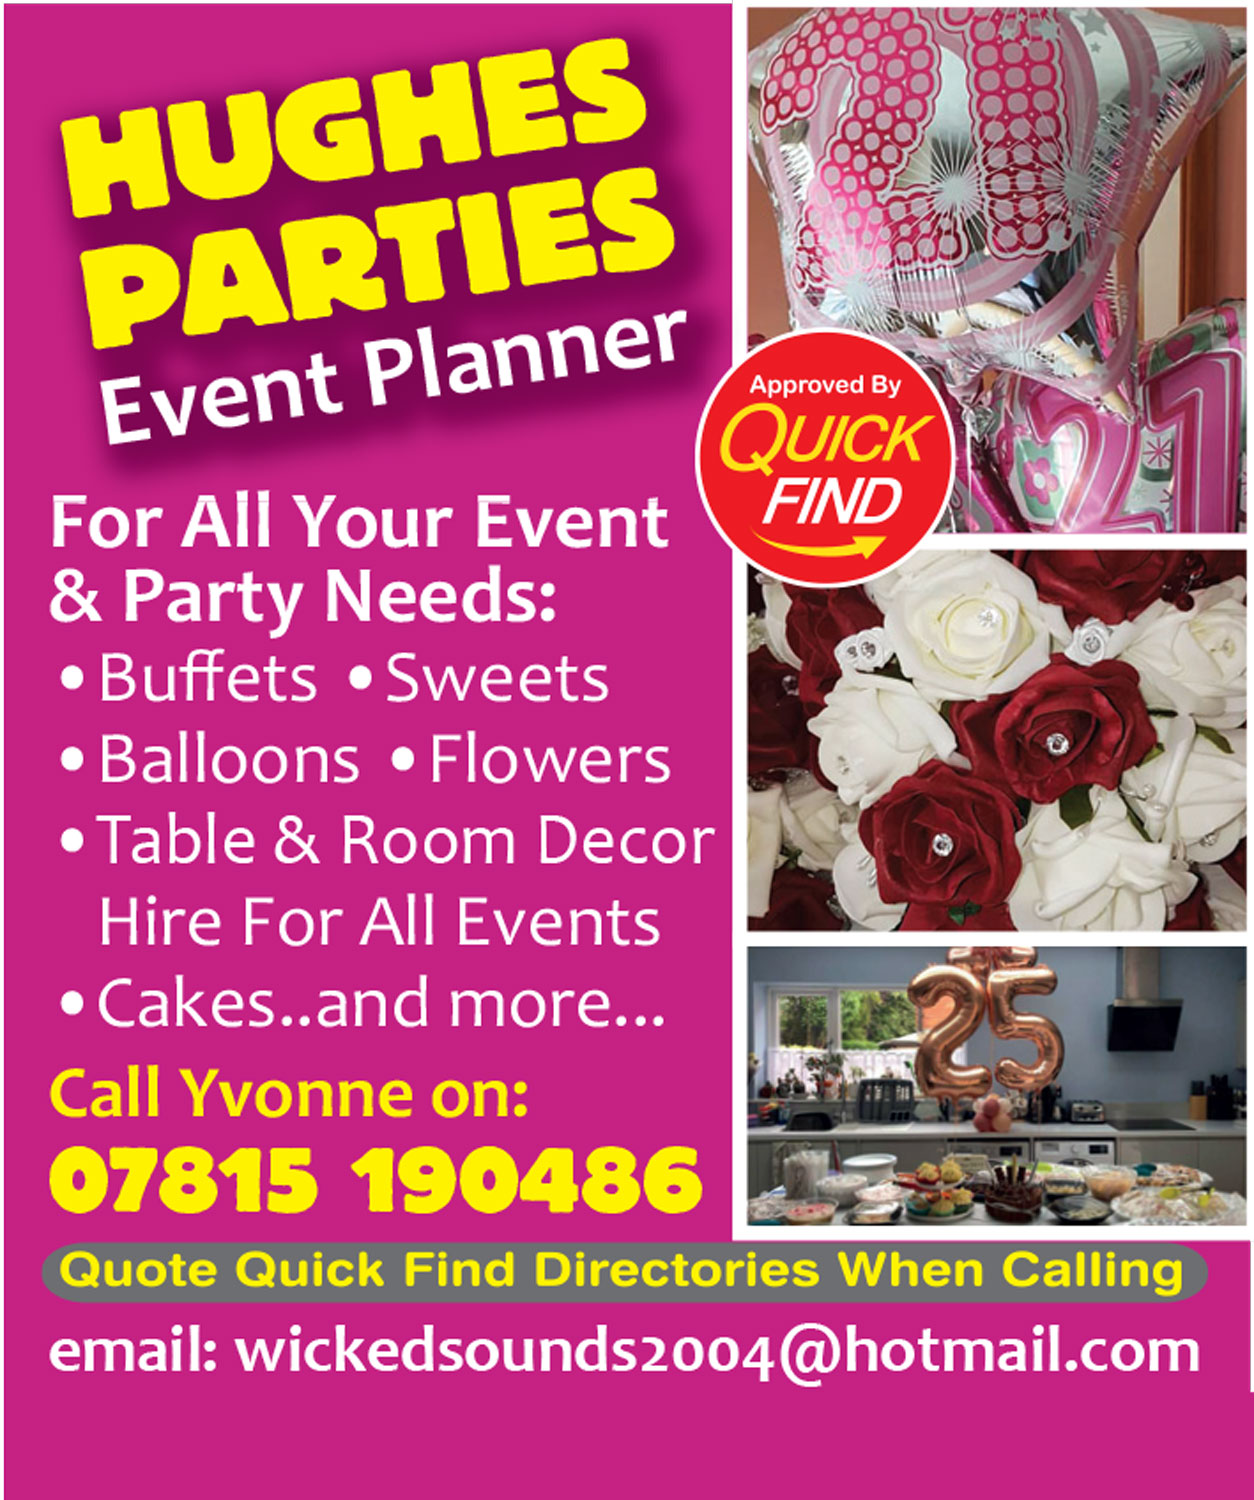 Hughes Parties Event Planner